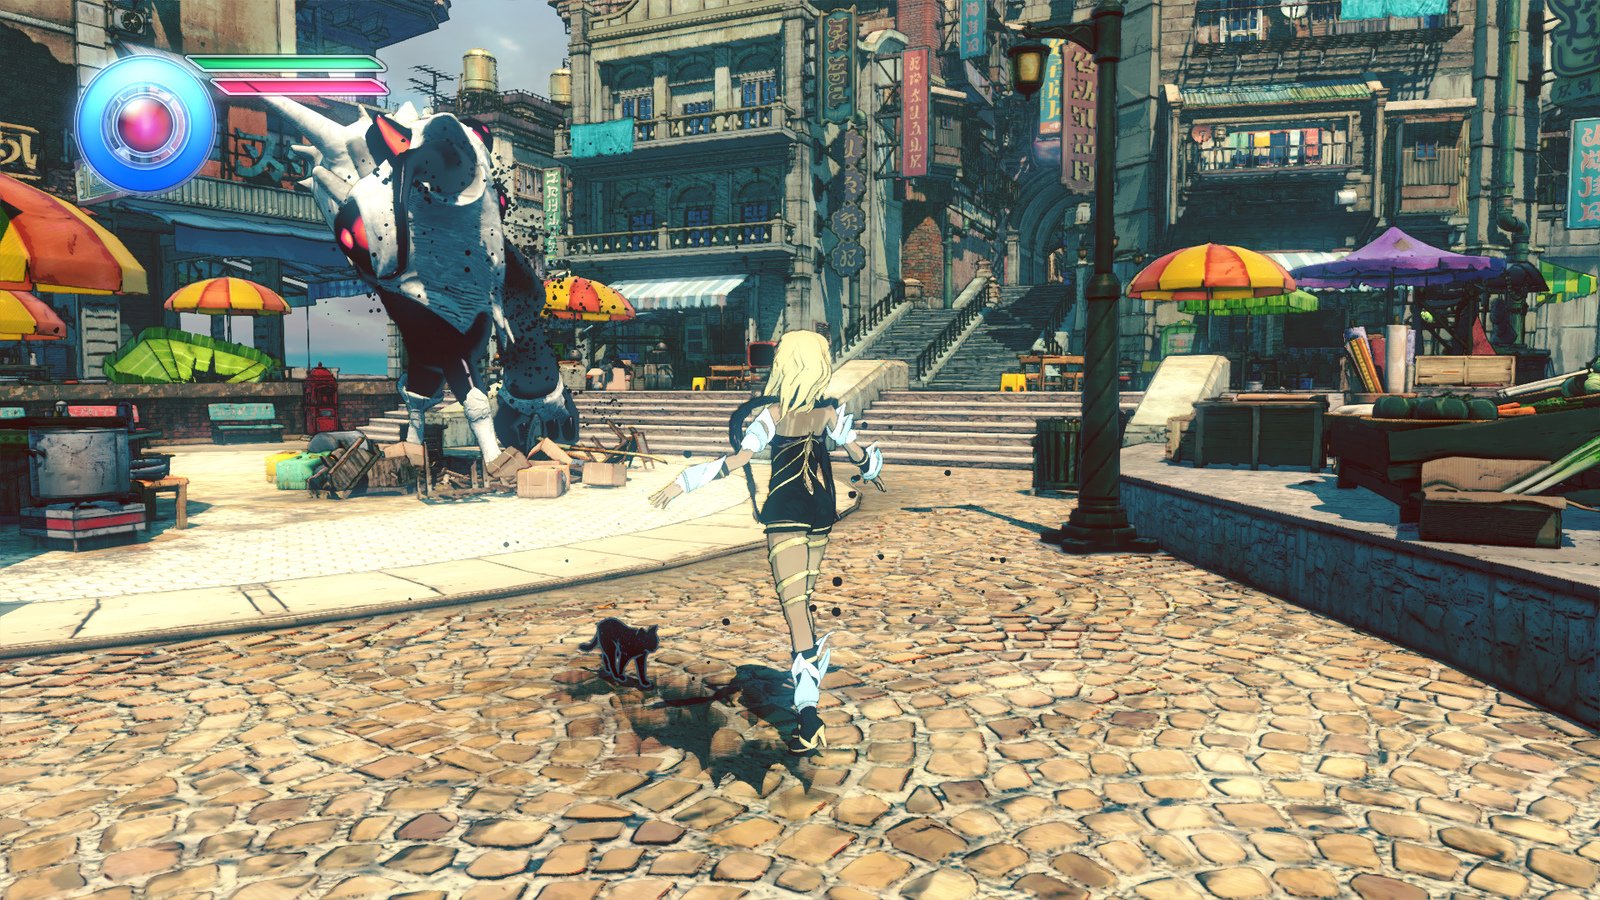 Gravity Rush Remastered for PS4 image